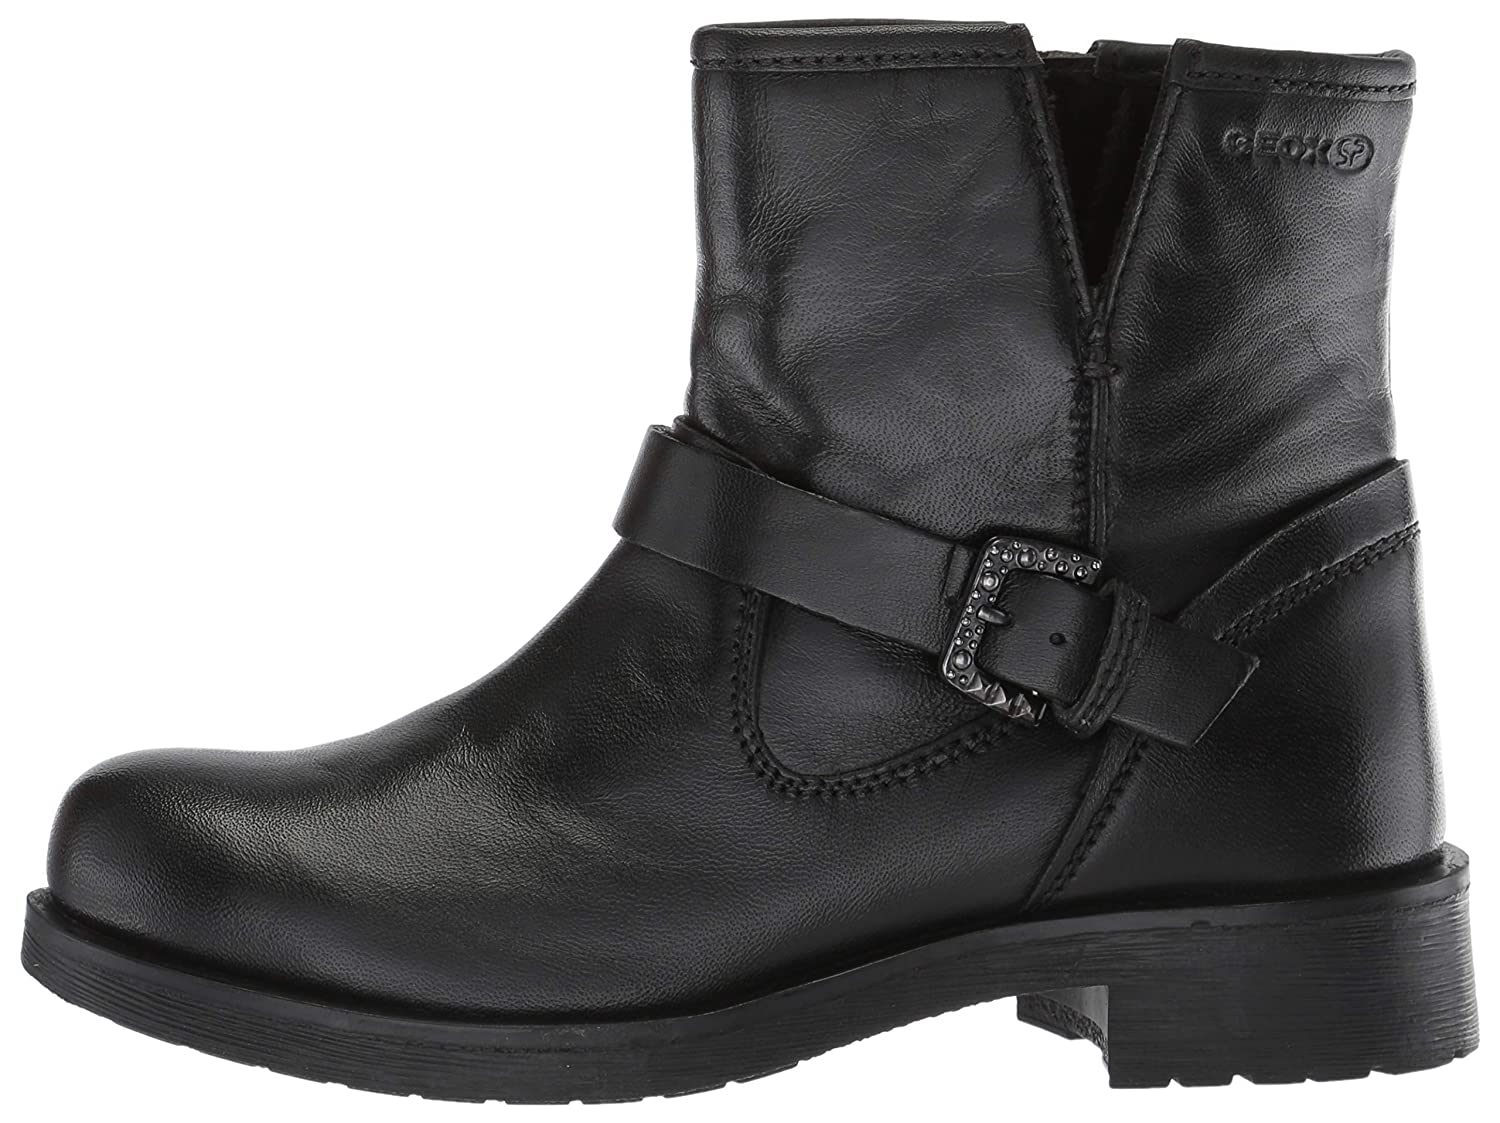 Amazon.com | Geox Womens Rawelle 1 Buckle Biker Boot Ankle | Ankle & Bootie